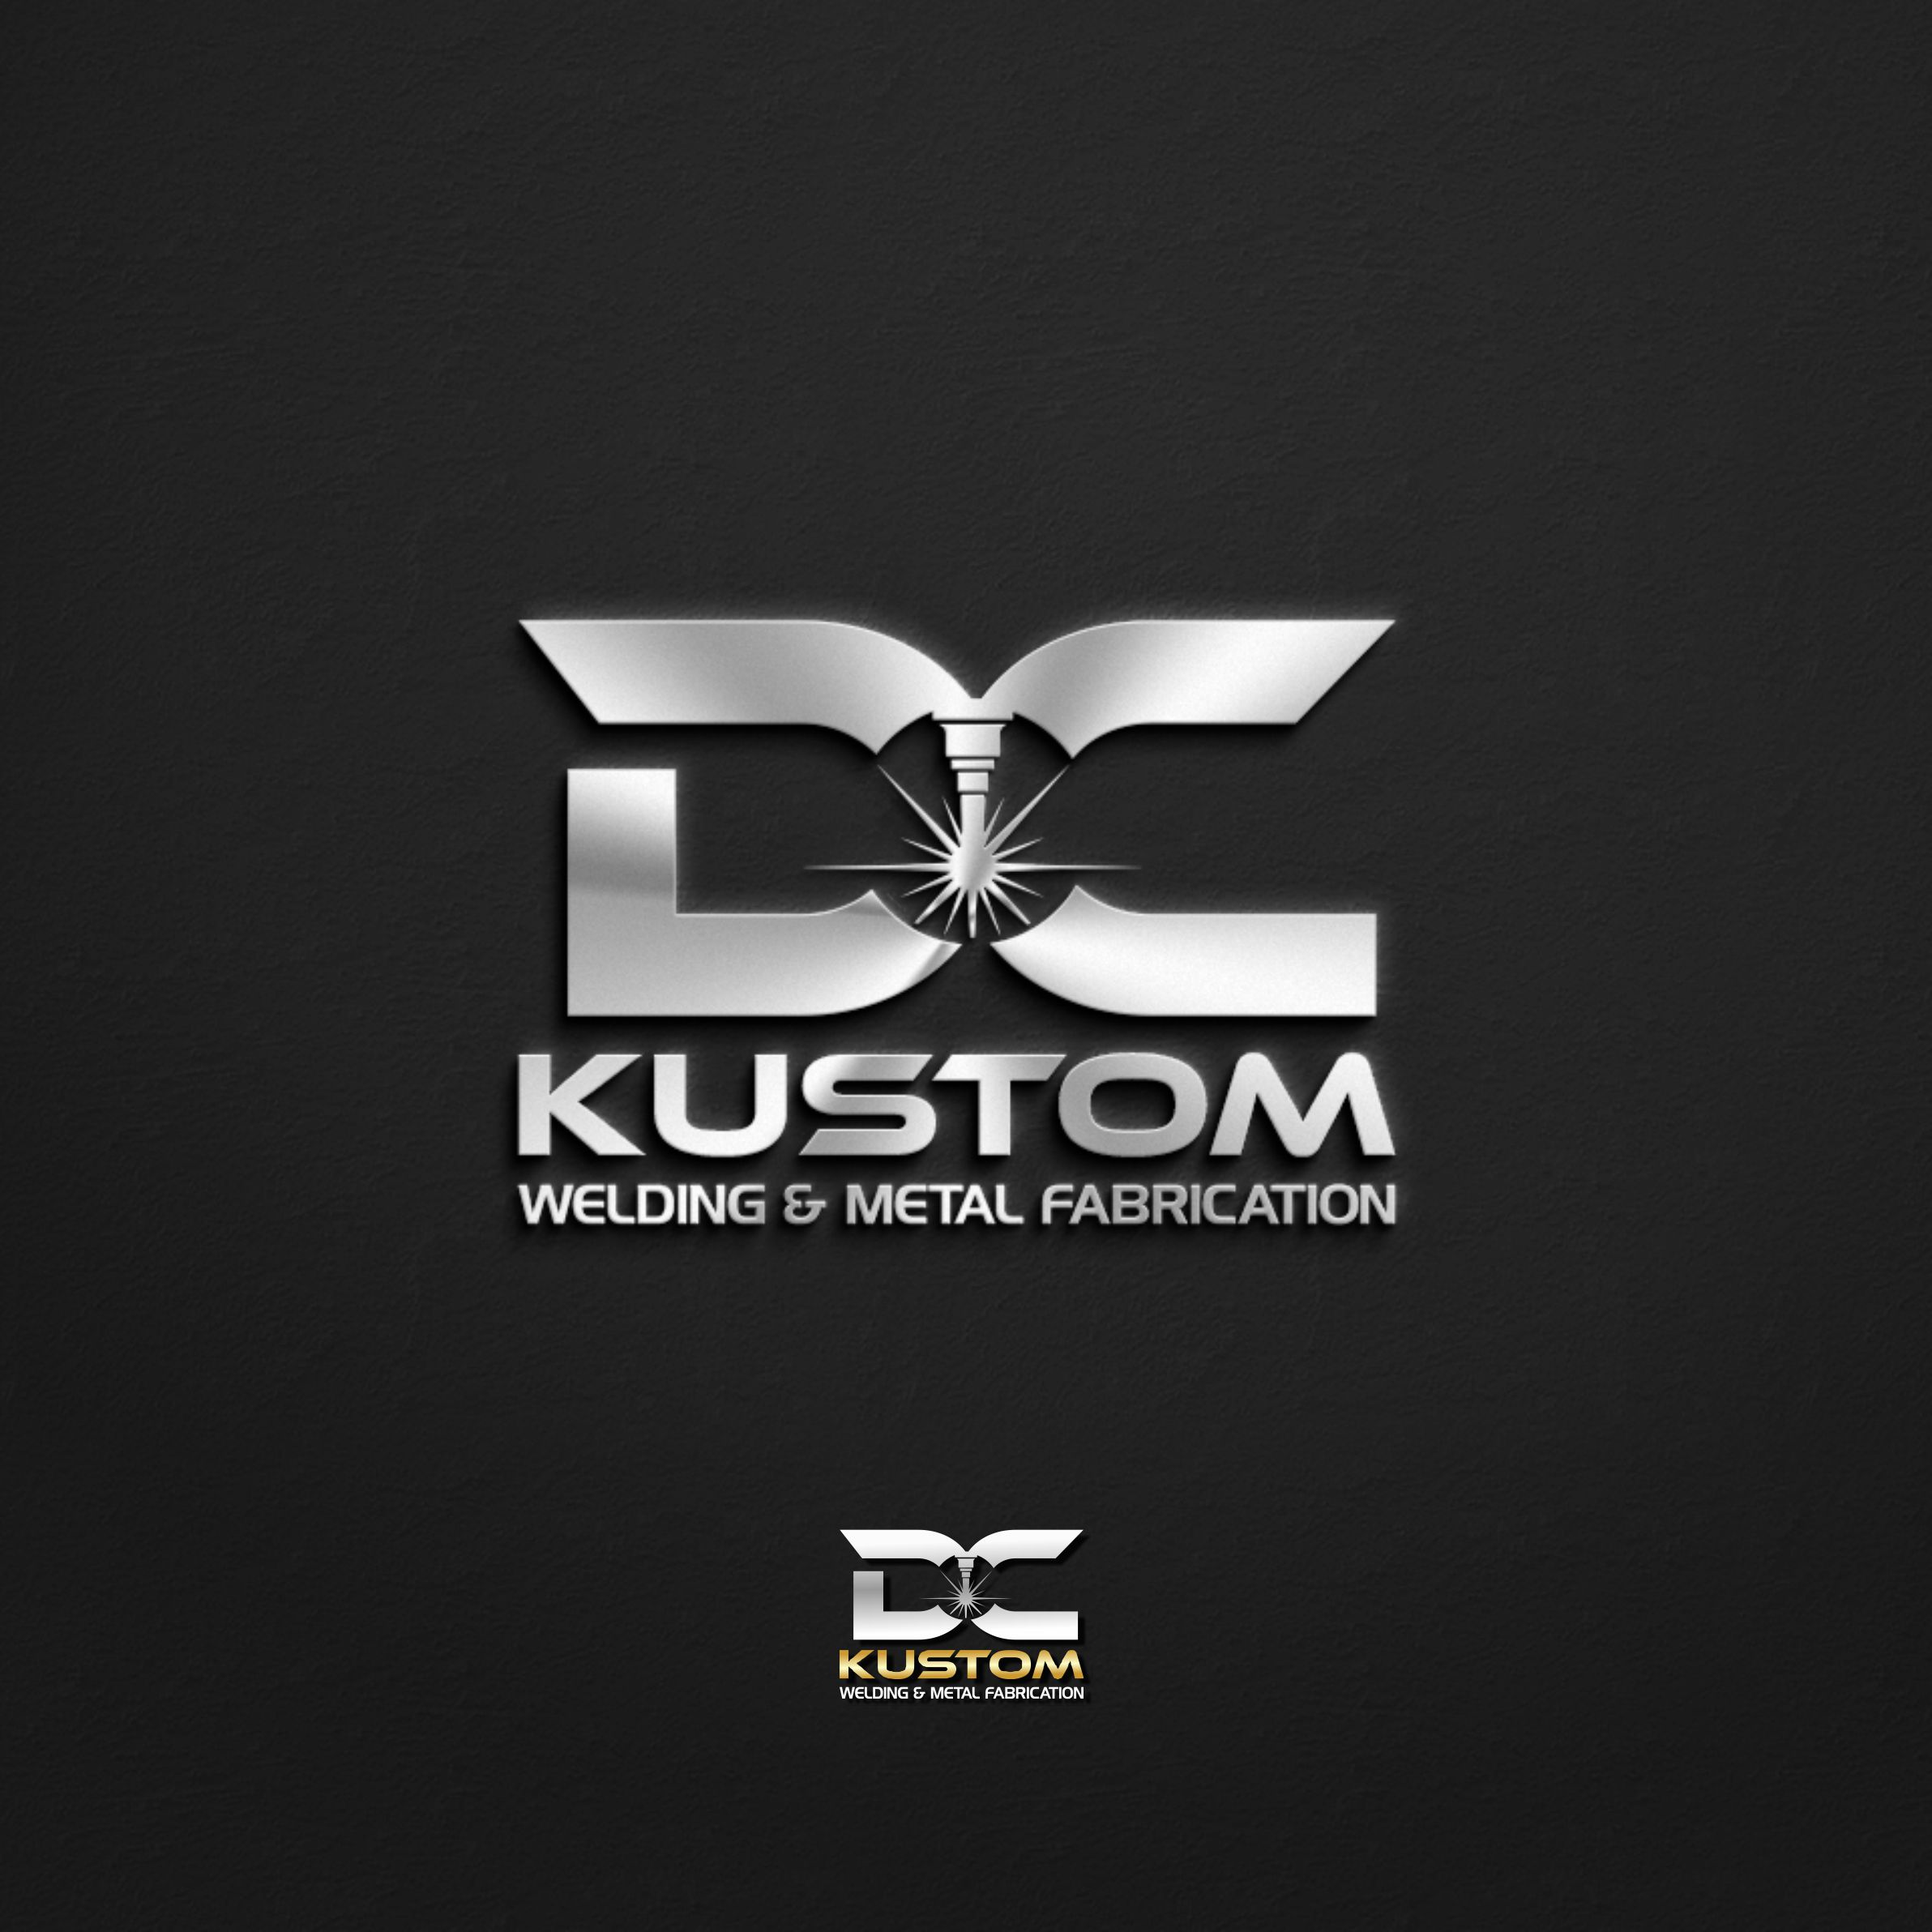 Logo Design by Raymond Garcia - Entry No. 46 in the Logo Design Contest Imaginative Logo Design for DC KUSTOM WELDING & METAL FABRICATION.